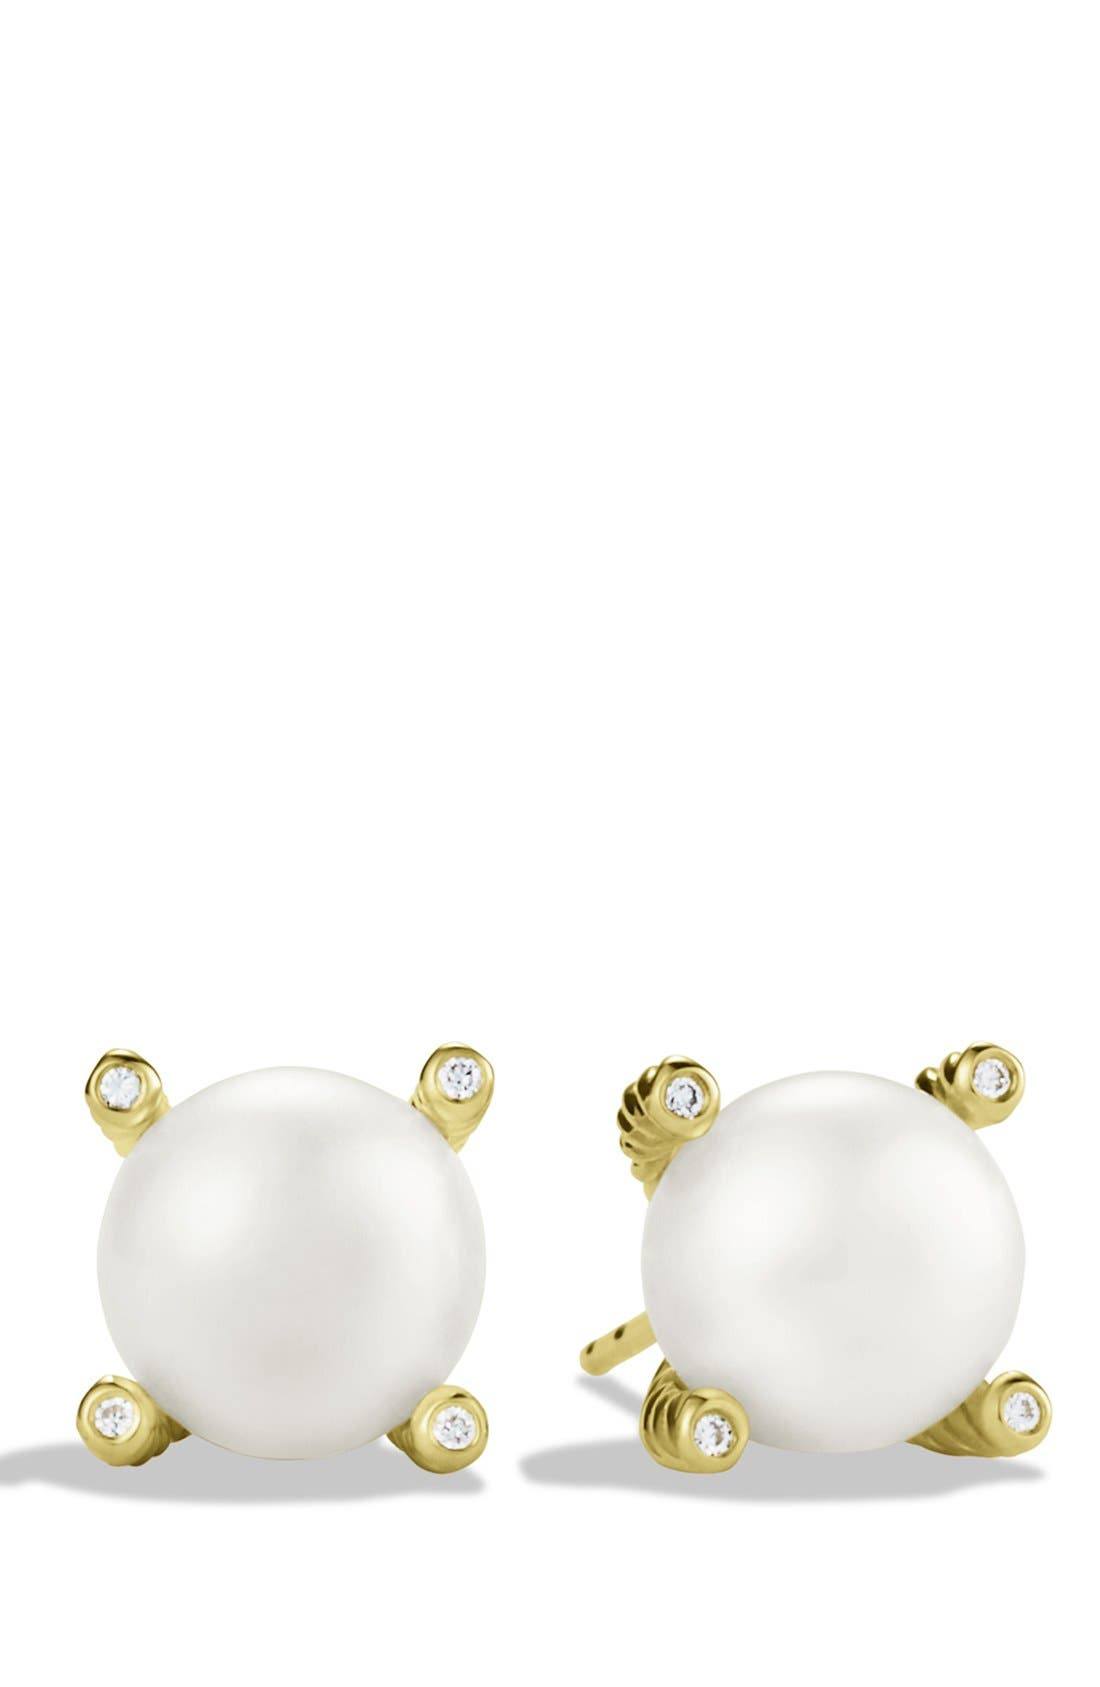 Pearl Earrings with Diamonds in Gold,                         Main,                         color, Pearl